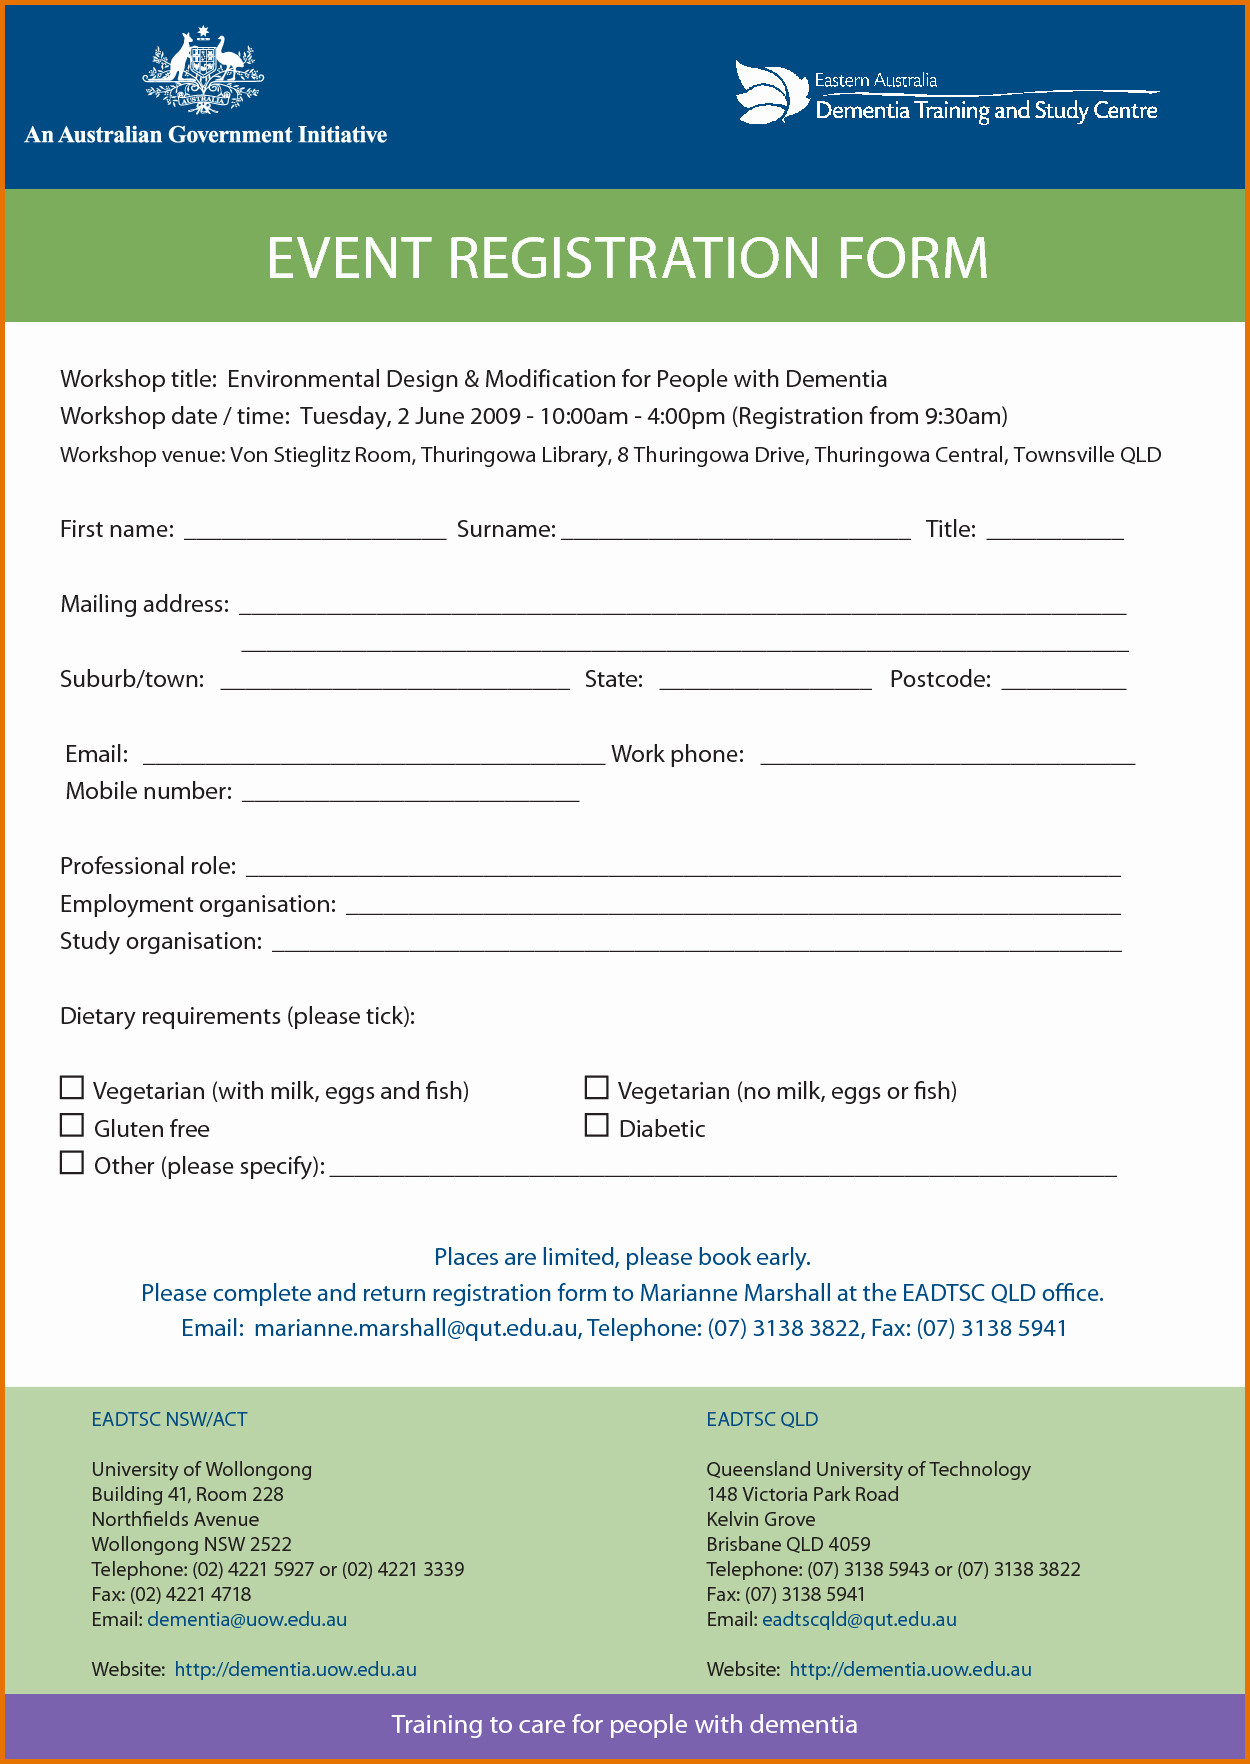 Registration form Template Wordreference Letters Words